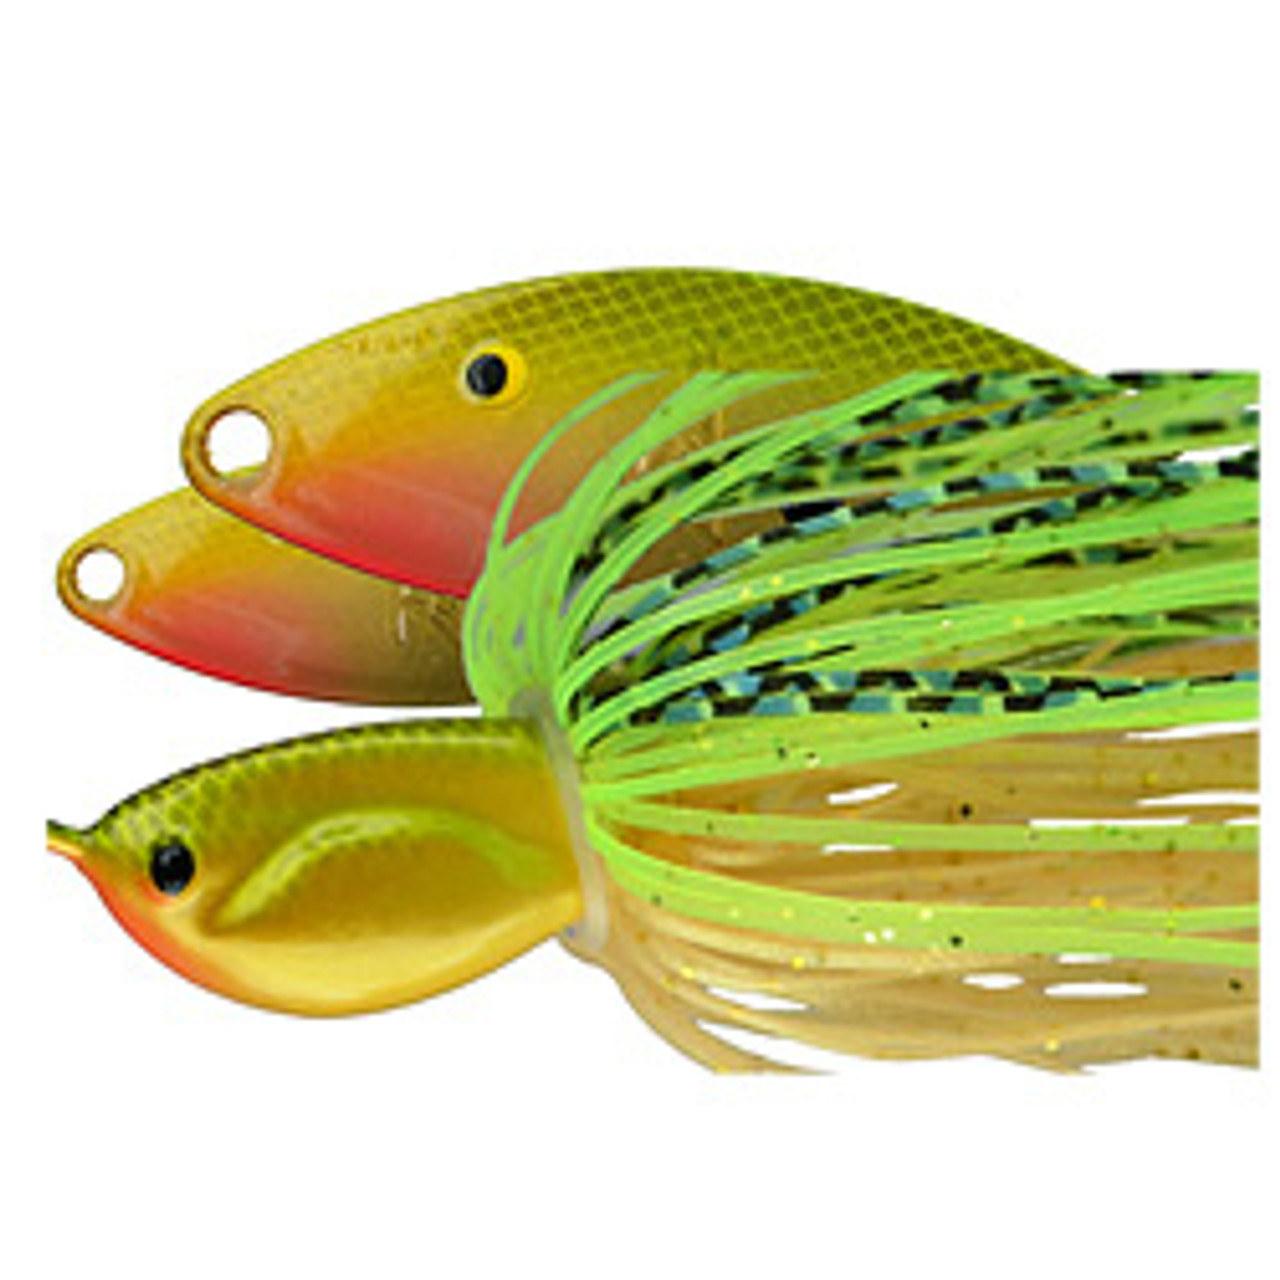 Double Willow Painted 1/2 oz Spinnerbait by Picasso Lures